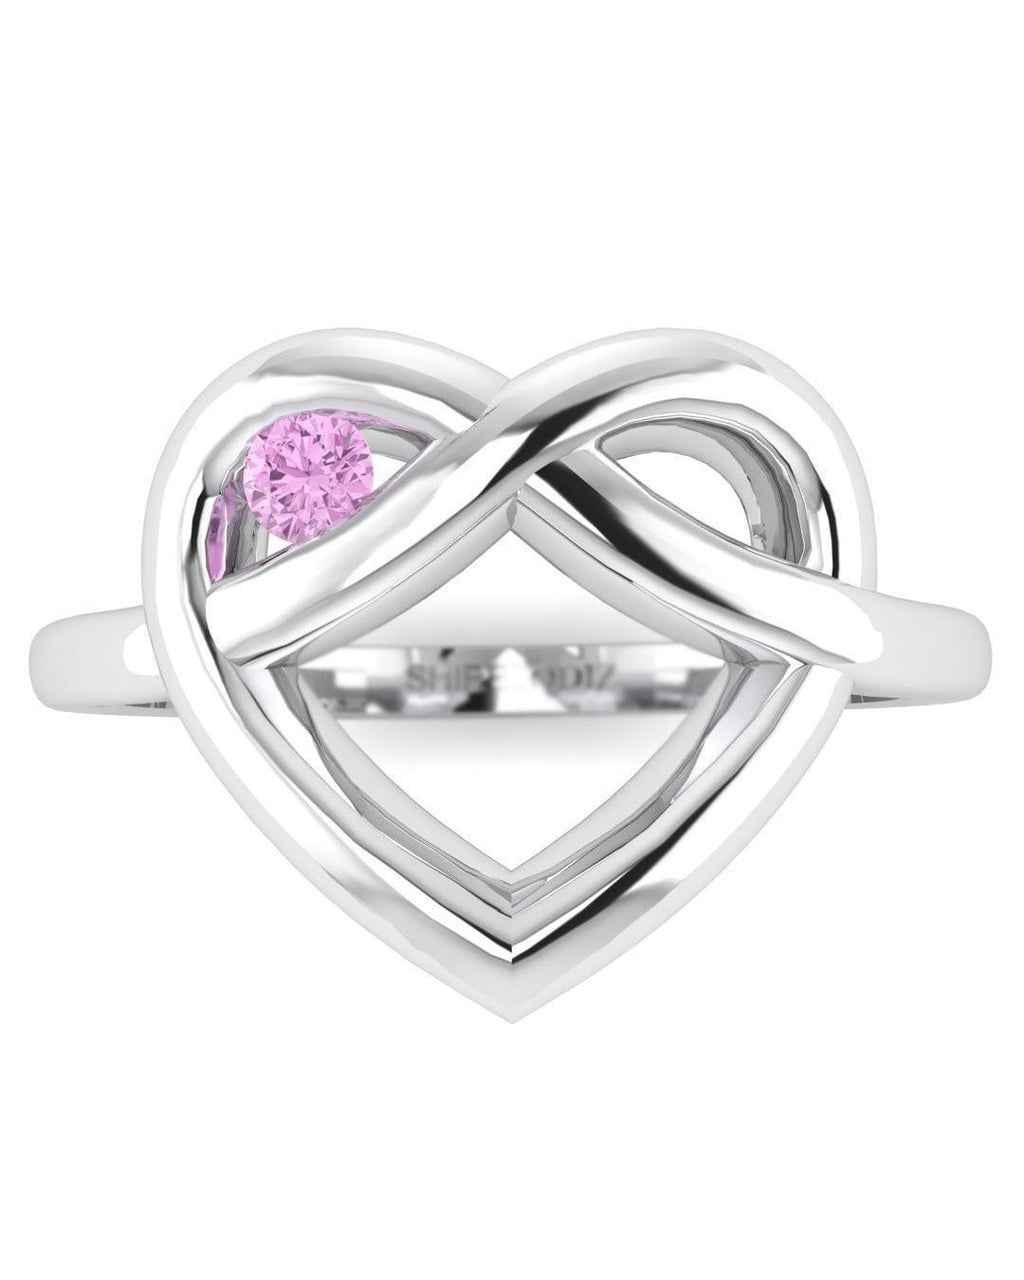 Hidden 14K White Gold Purple Amethyst Promise Ring - Winking Heart